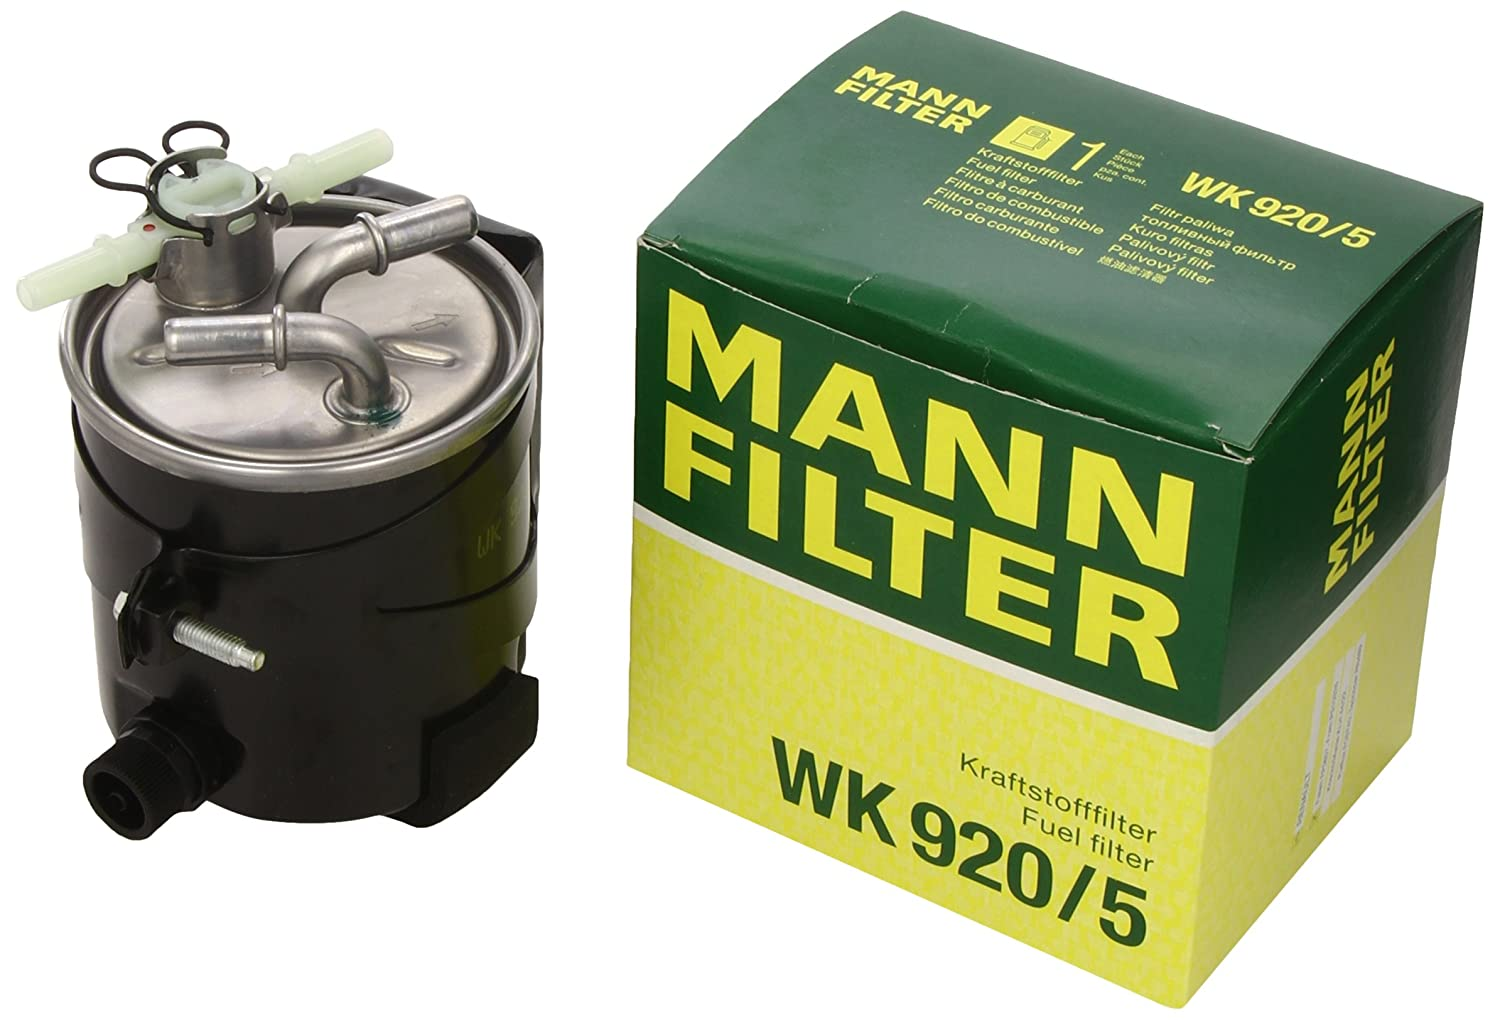 Mann Filter WK9205 Filtre /à carburant